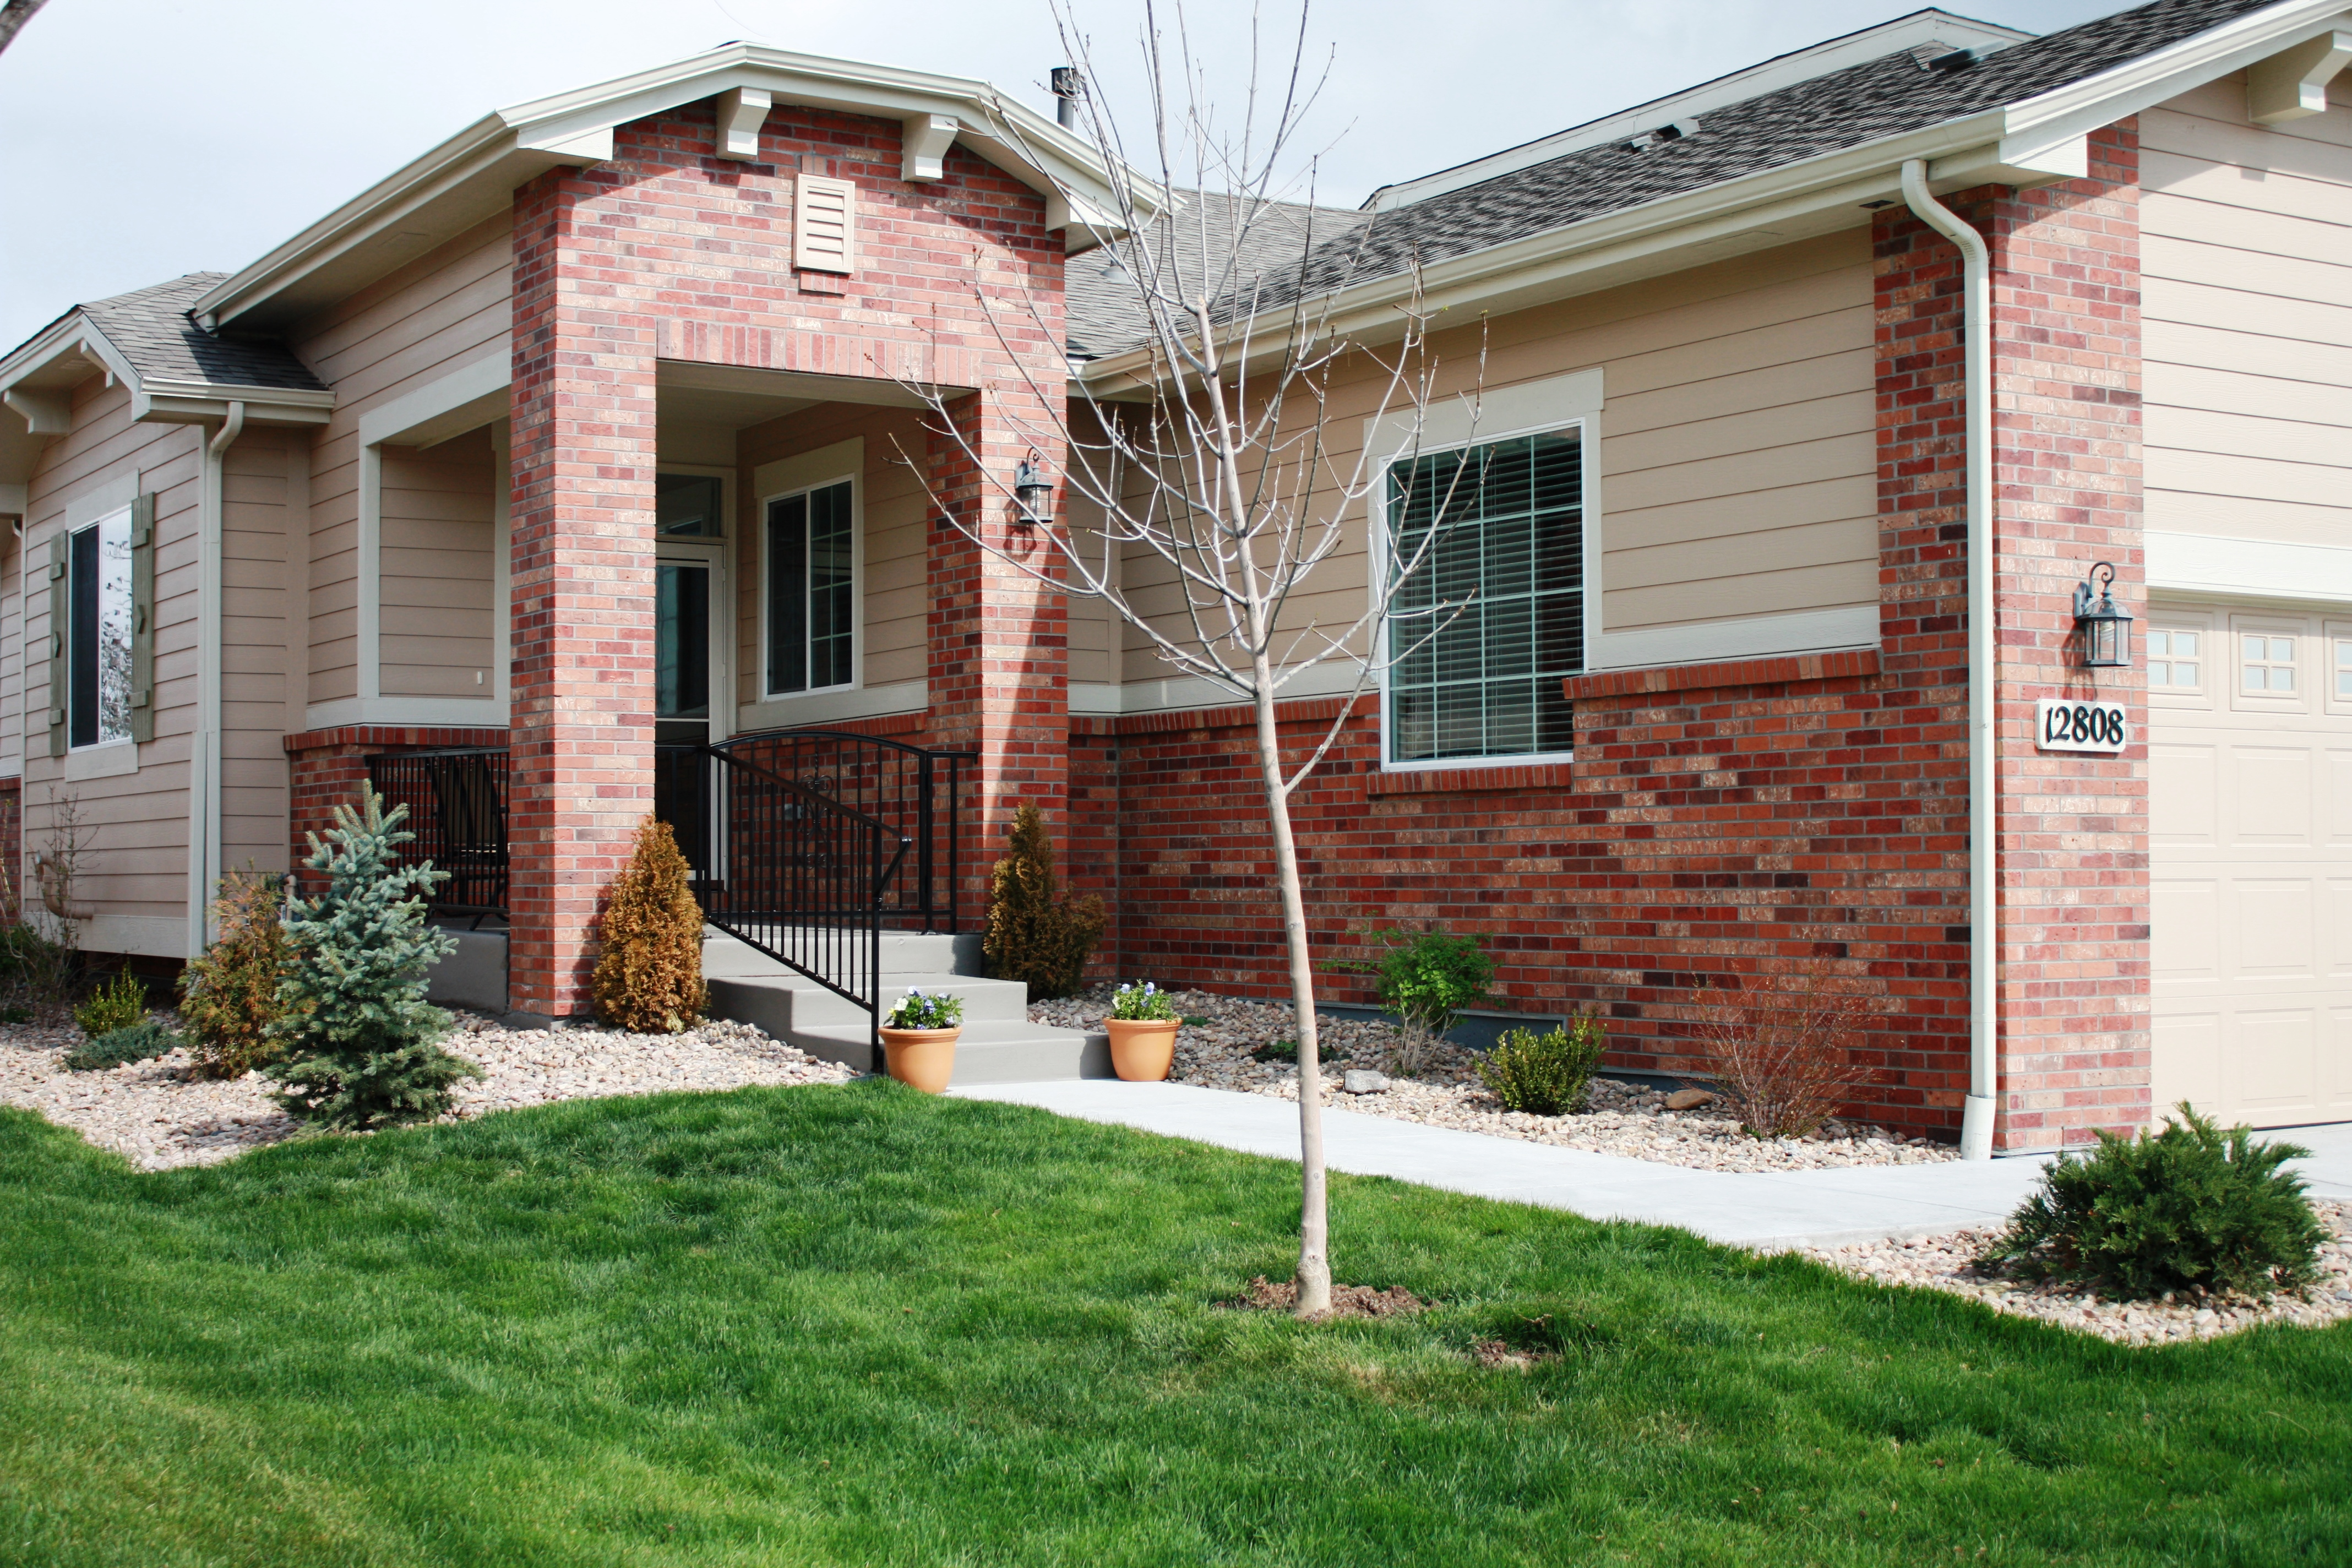 townhome in thornton for sale broomfield co homes for sale blog